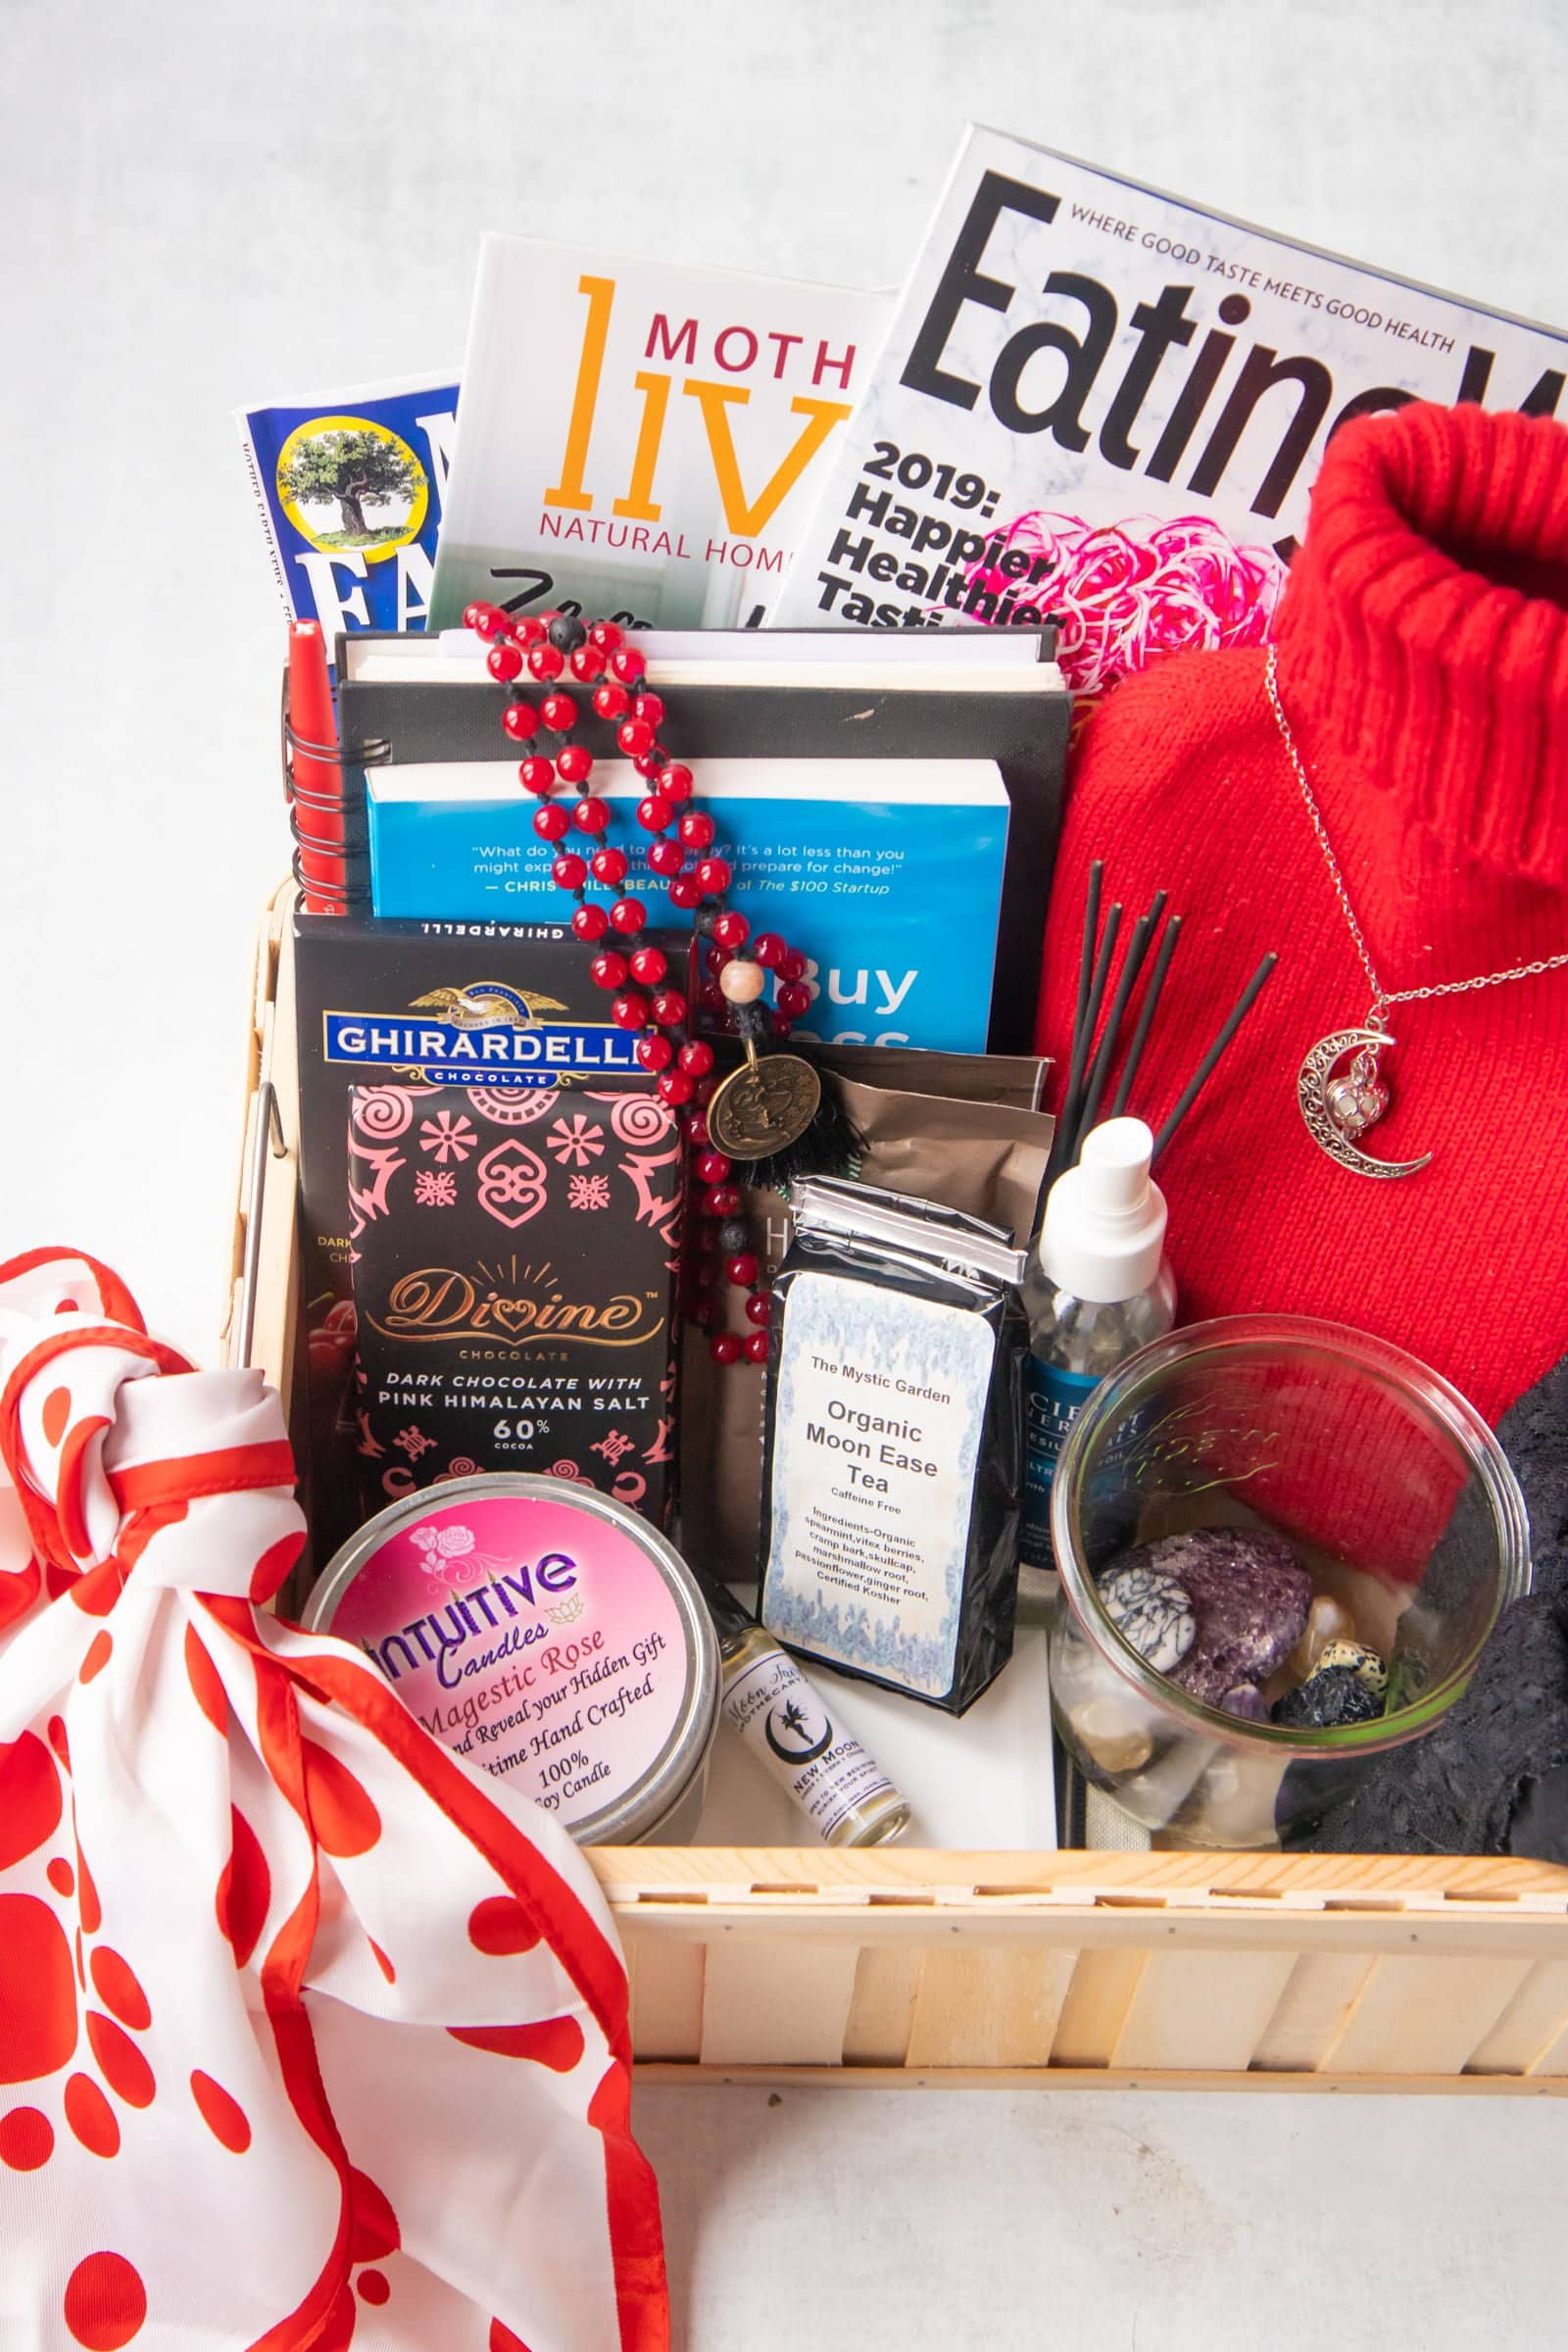 A bleed box, filled with all sorts of goodies - a red and white scarf, a candle, crystals, hot water bottle, magazines, books, a mala, and chocolate.